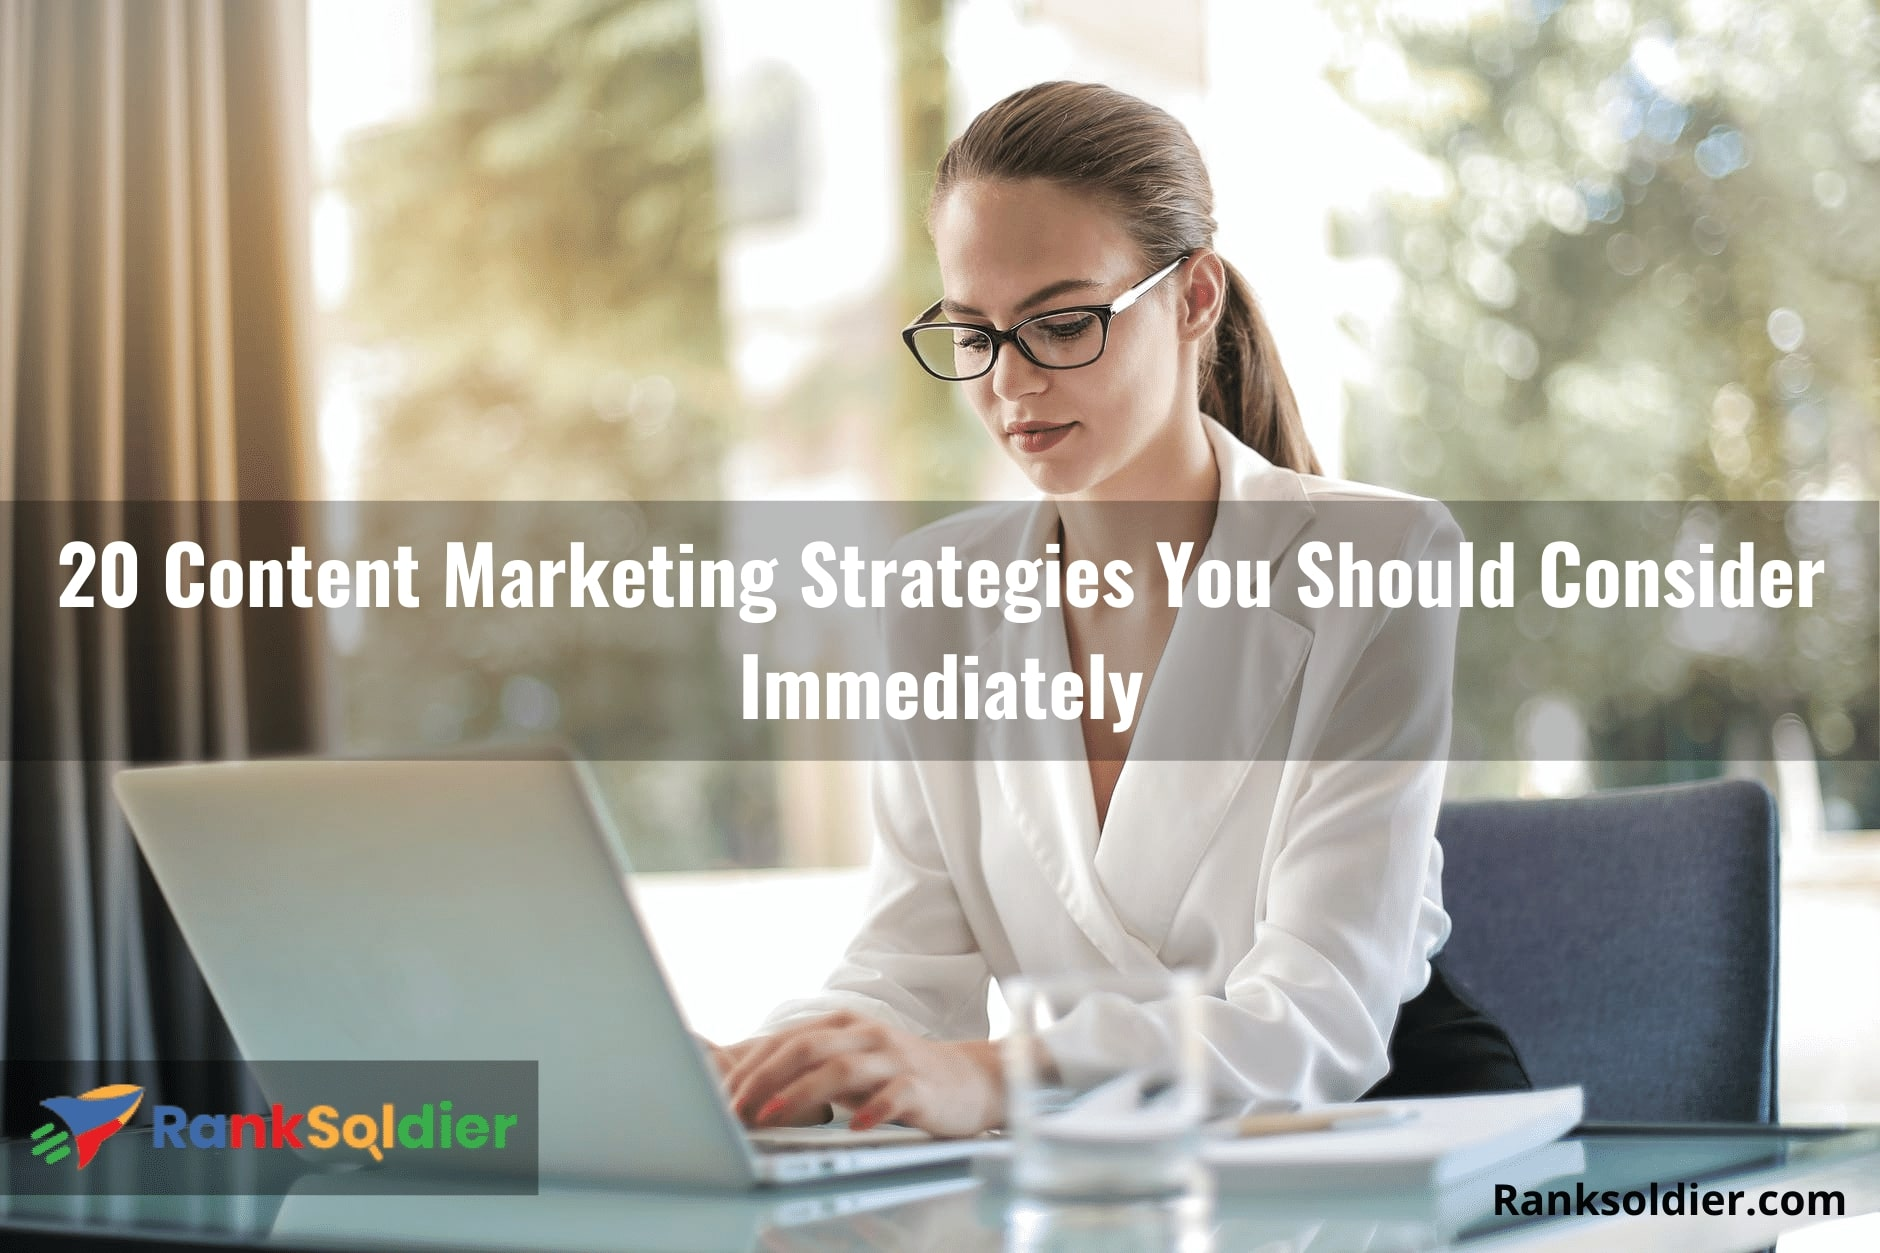 20 Content Marketing Strategies You Should Consider Immediately